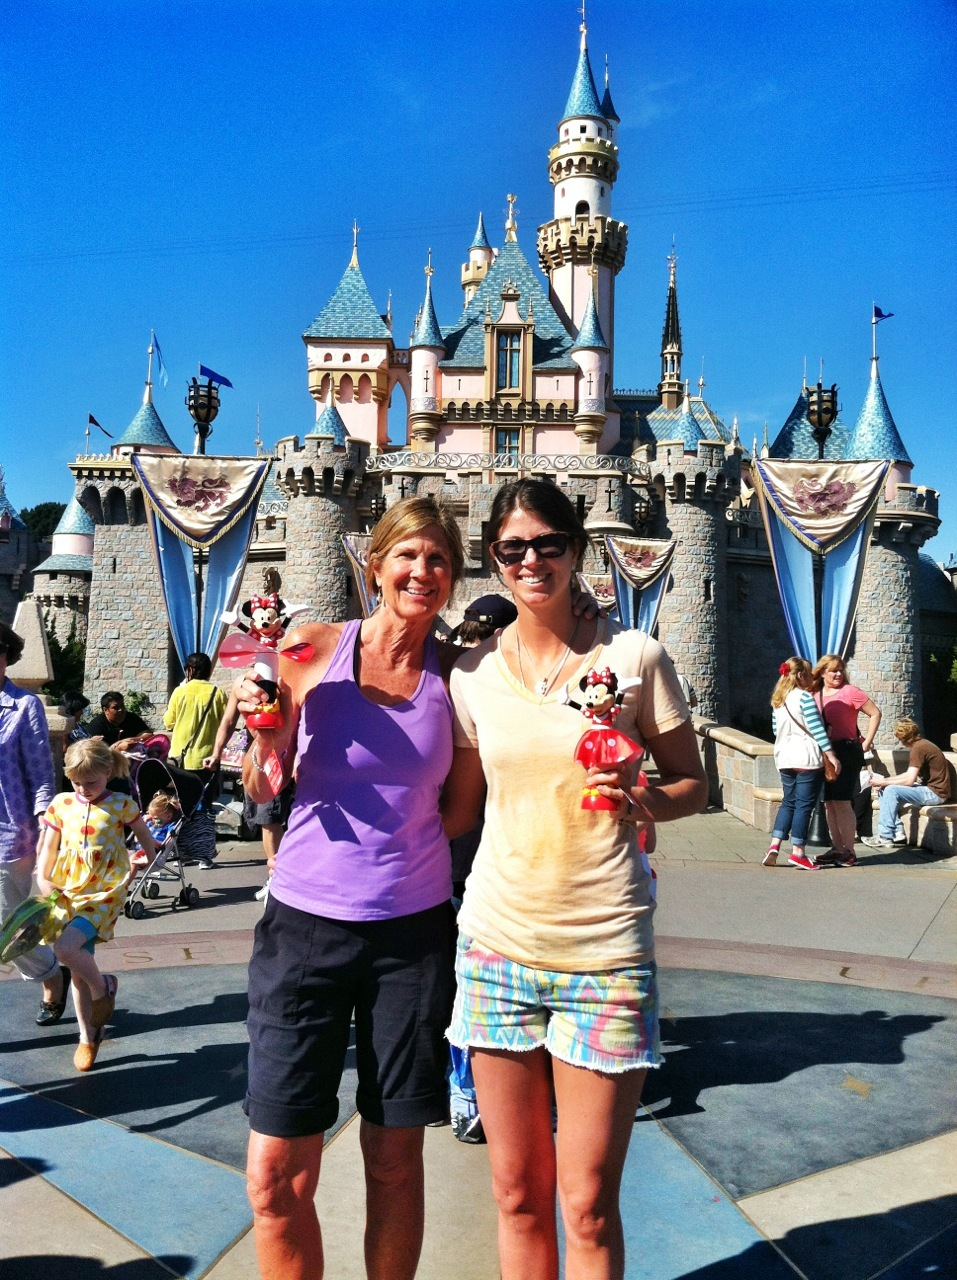 My mom and I at Disneyland. - © Meg Olenick